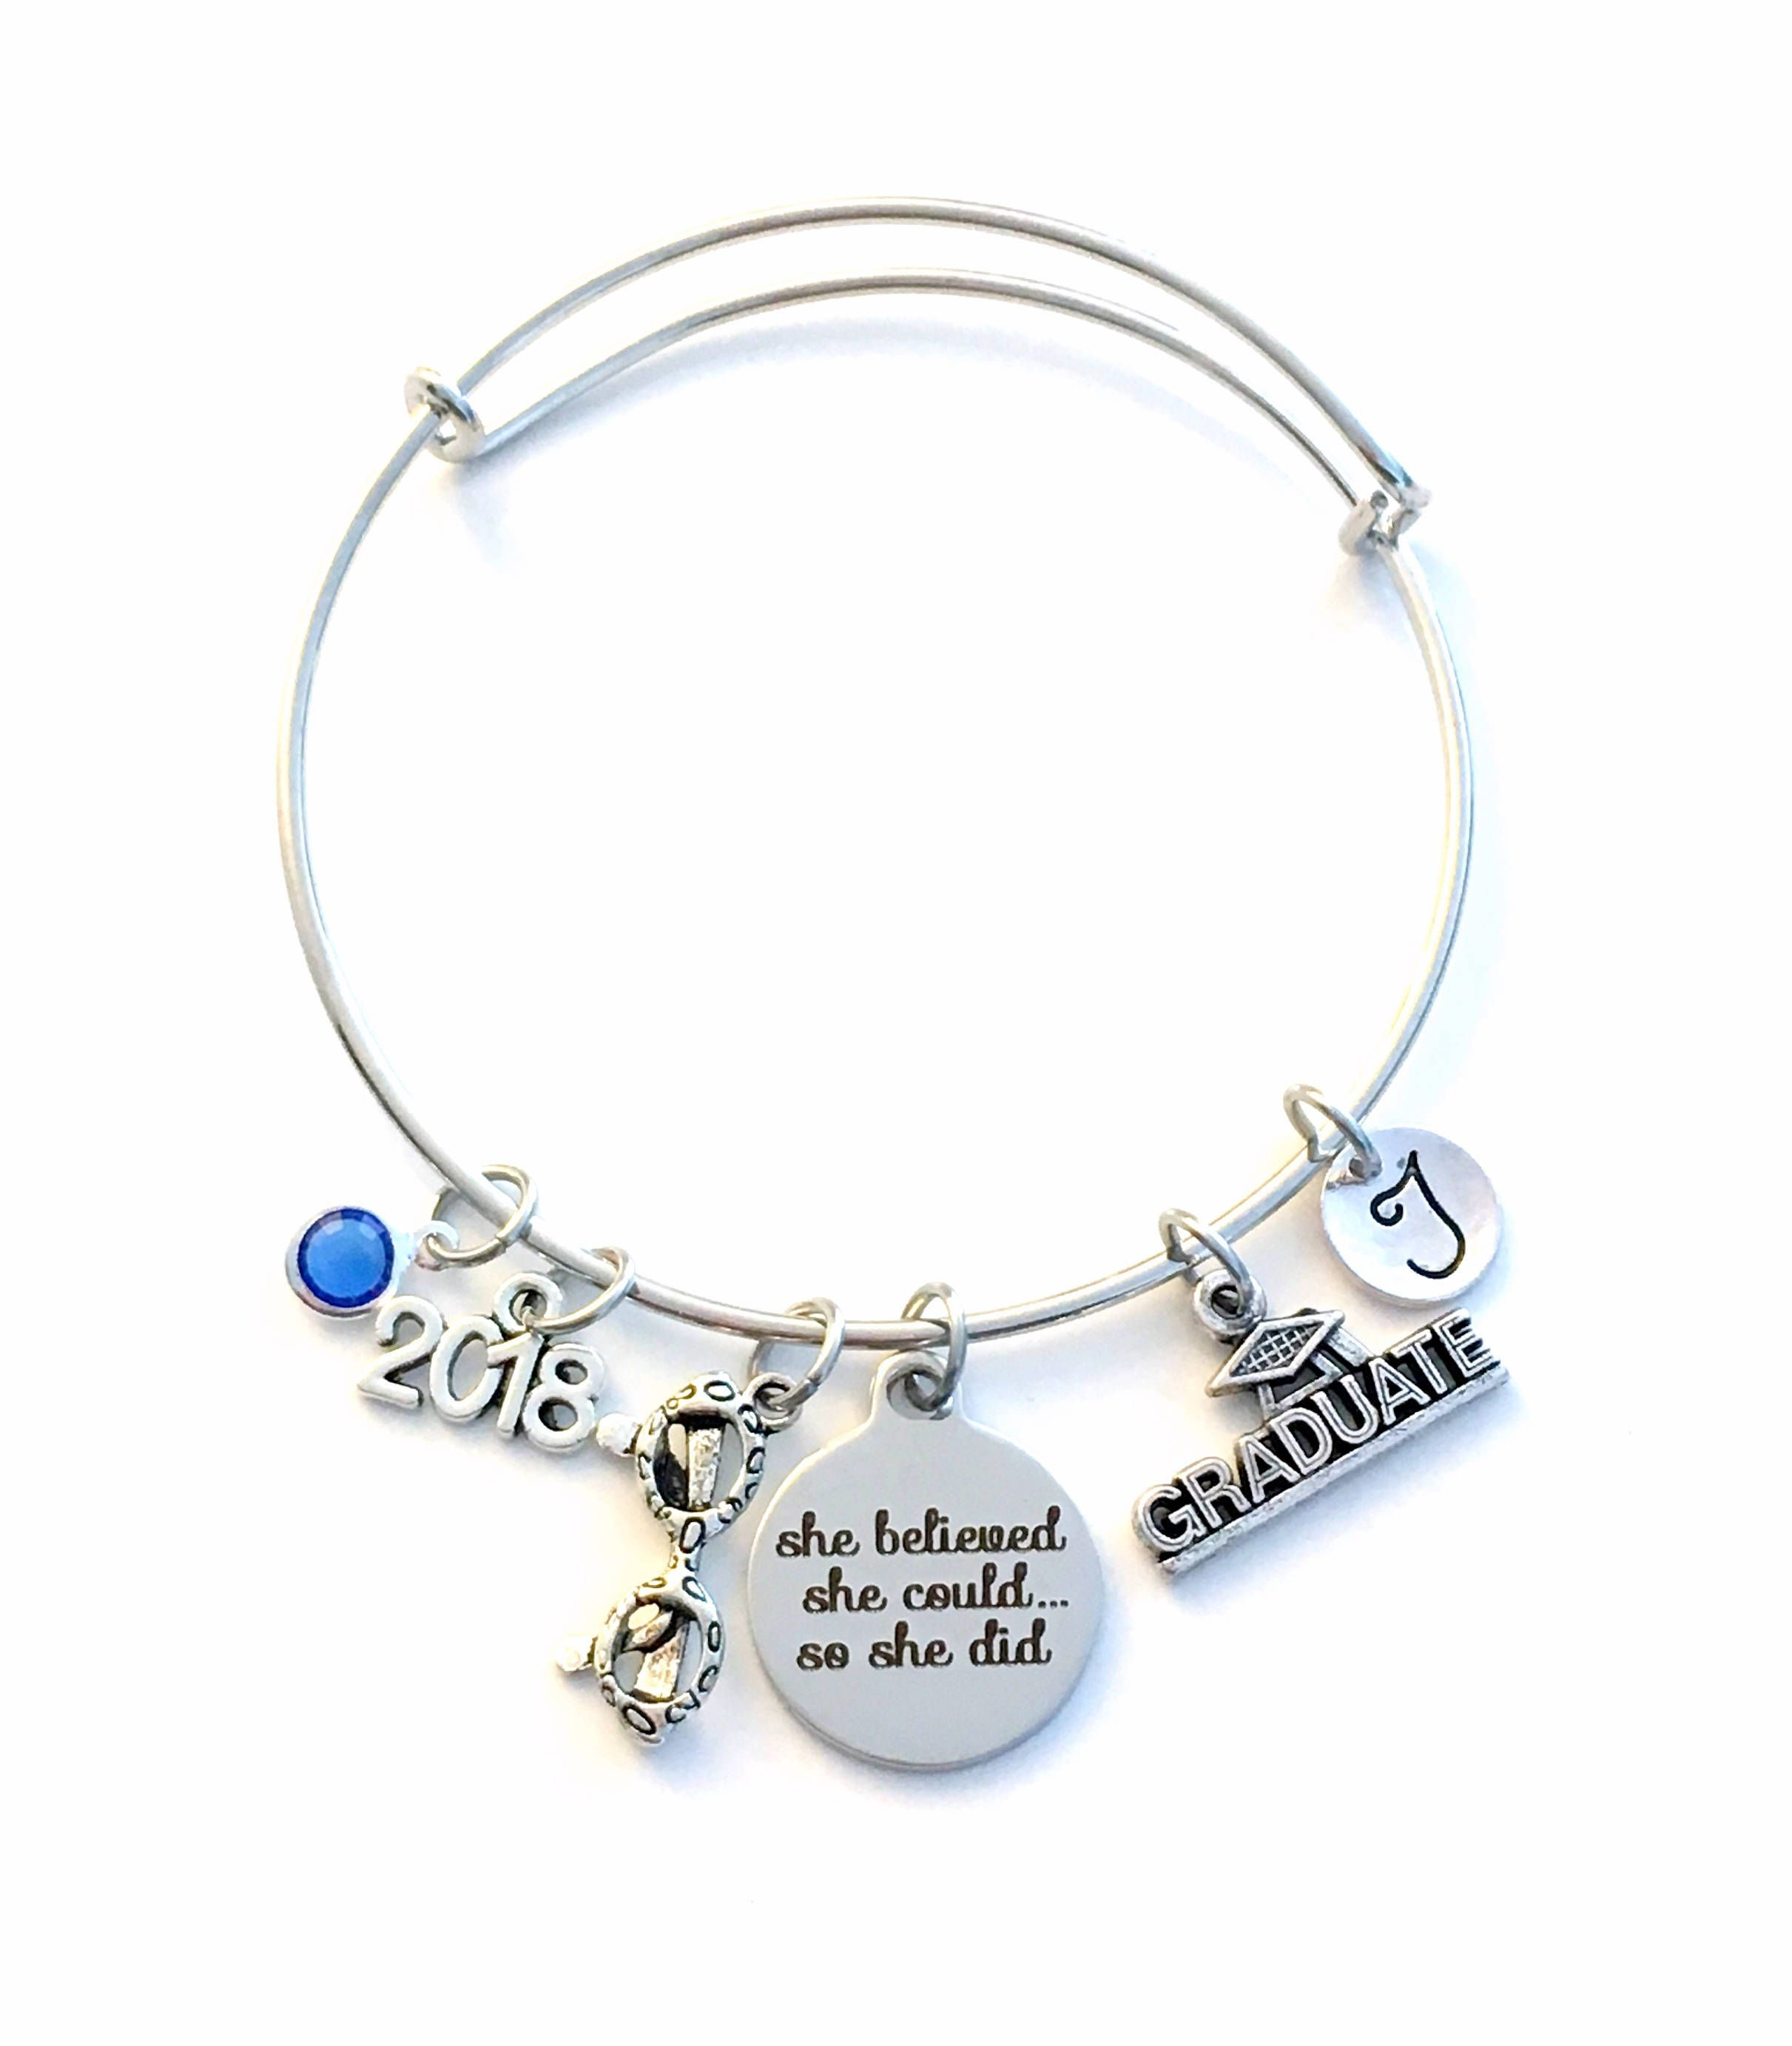 charm fullxfull bracelet graduation girly friend cracked bridesmaid charms sweet bff listing il sizing birthday best clear quartz custom pick gift